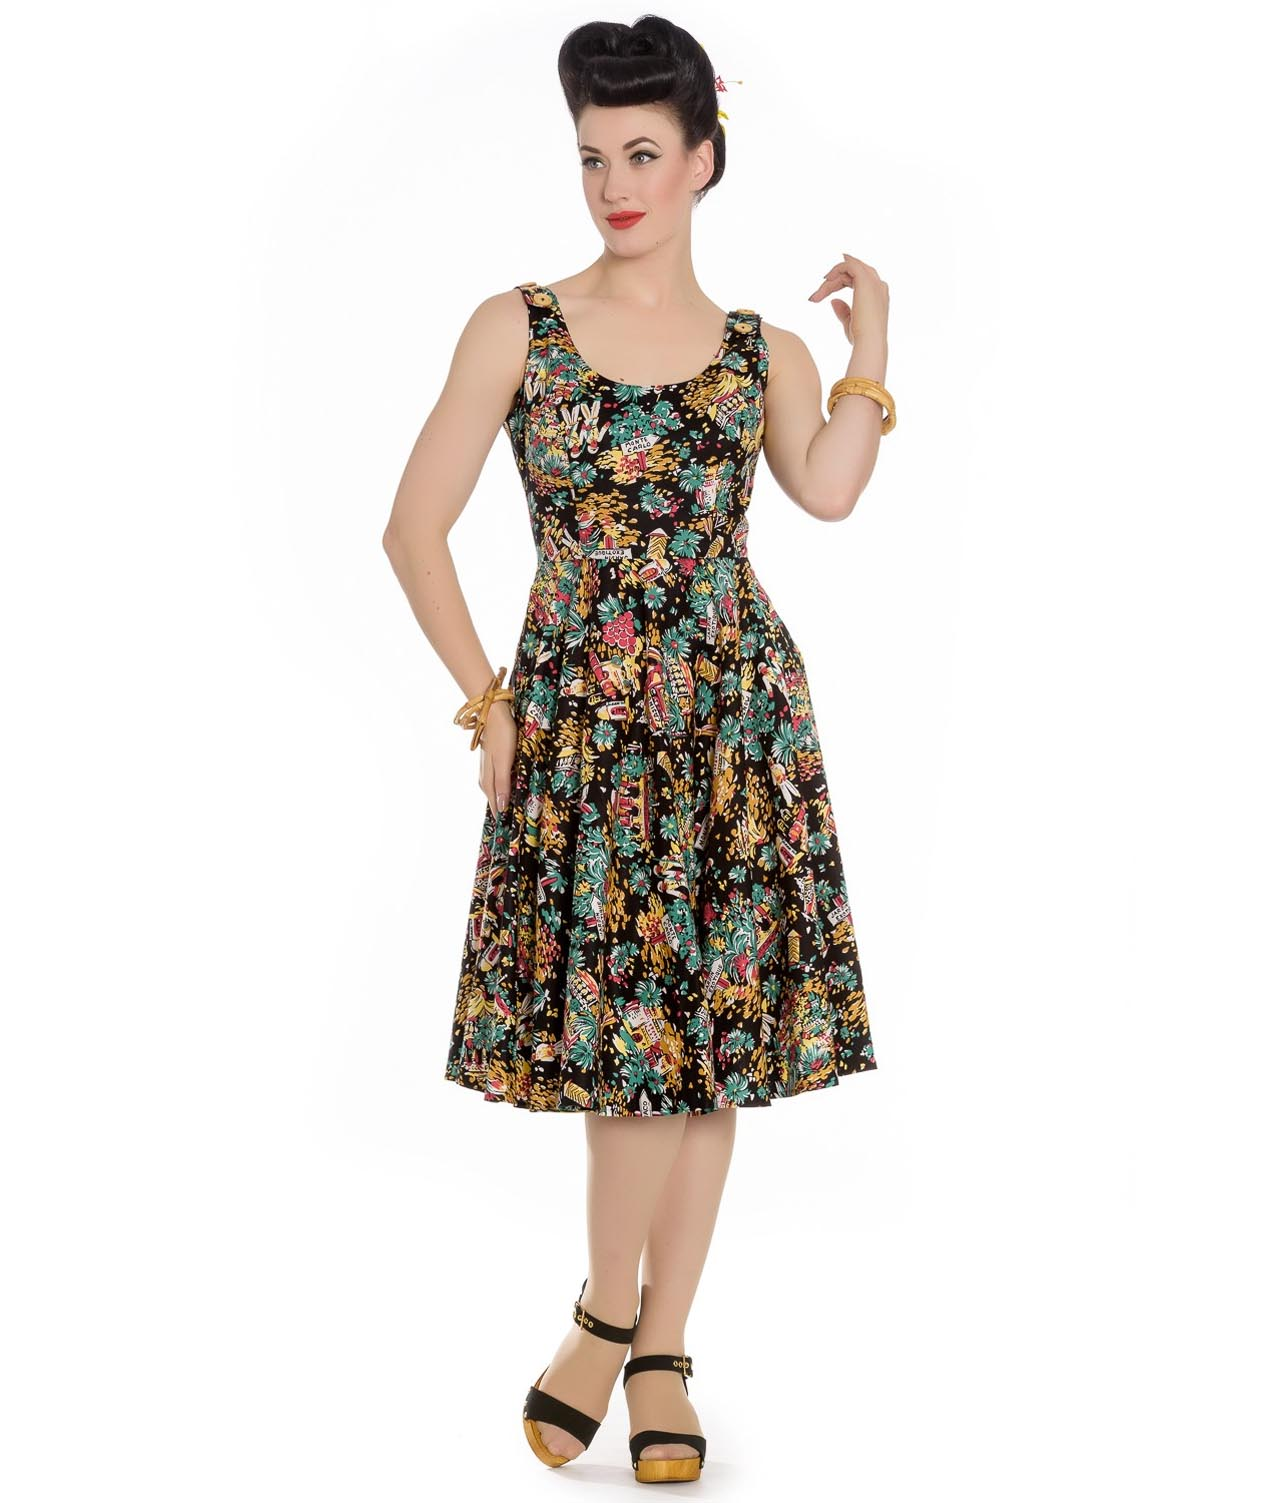 Hell-Bunny-Summer-50s-Black-Dress-MONTE-CARLO-Tropical-Holiday-All-Sizes thumbnail 19